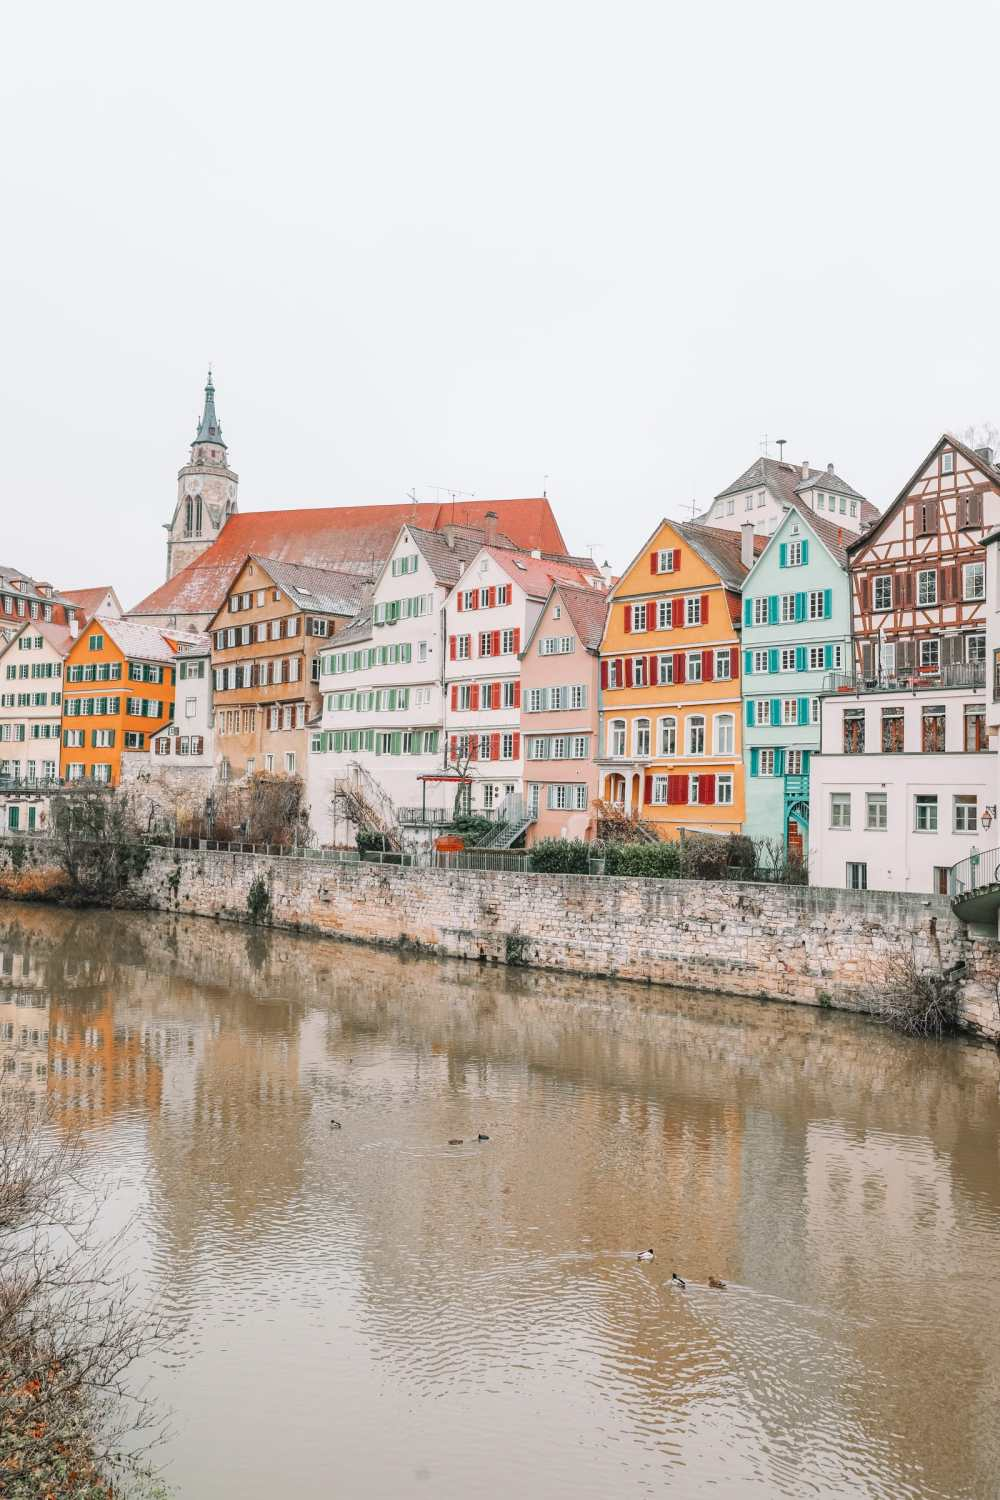 The Colourful Ancient City Of Tubingen, Germany (1)